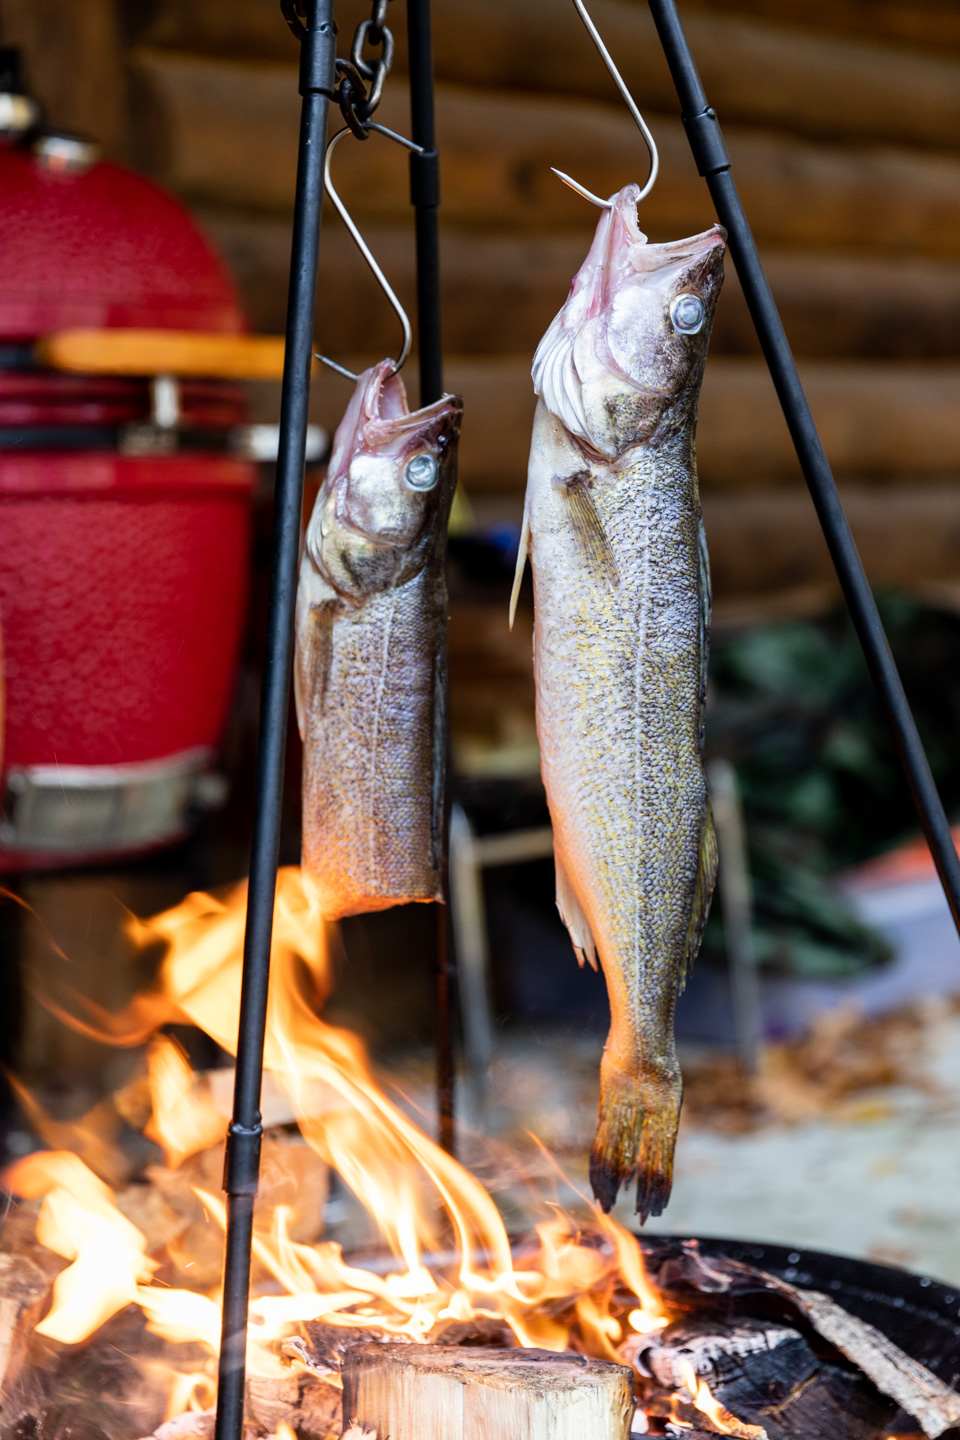 Walleyes cold smoking over an outdoor fire at the Milkweed Inn on October 21st, 2019.